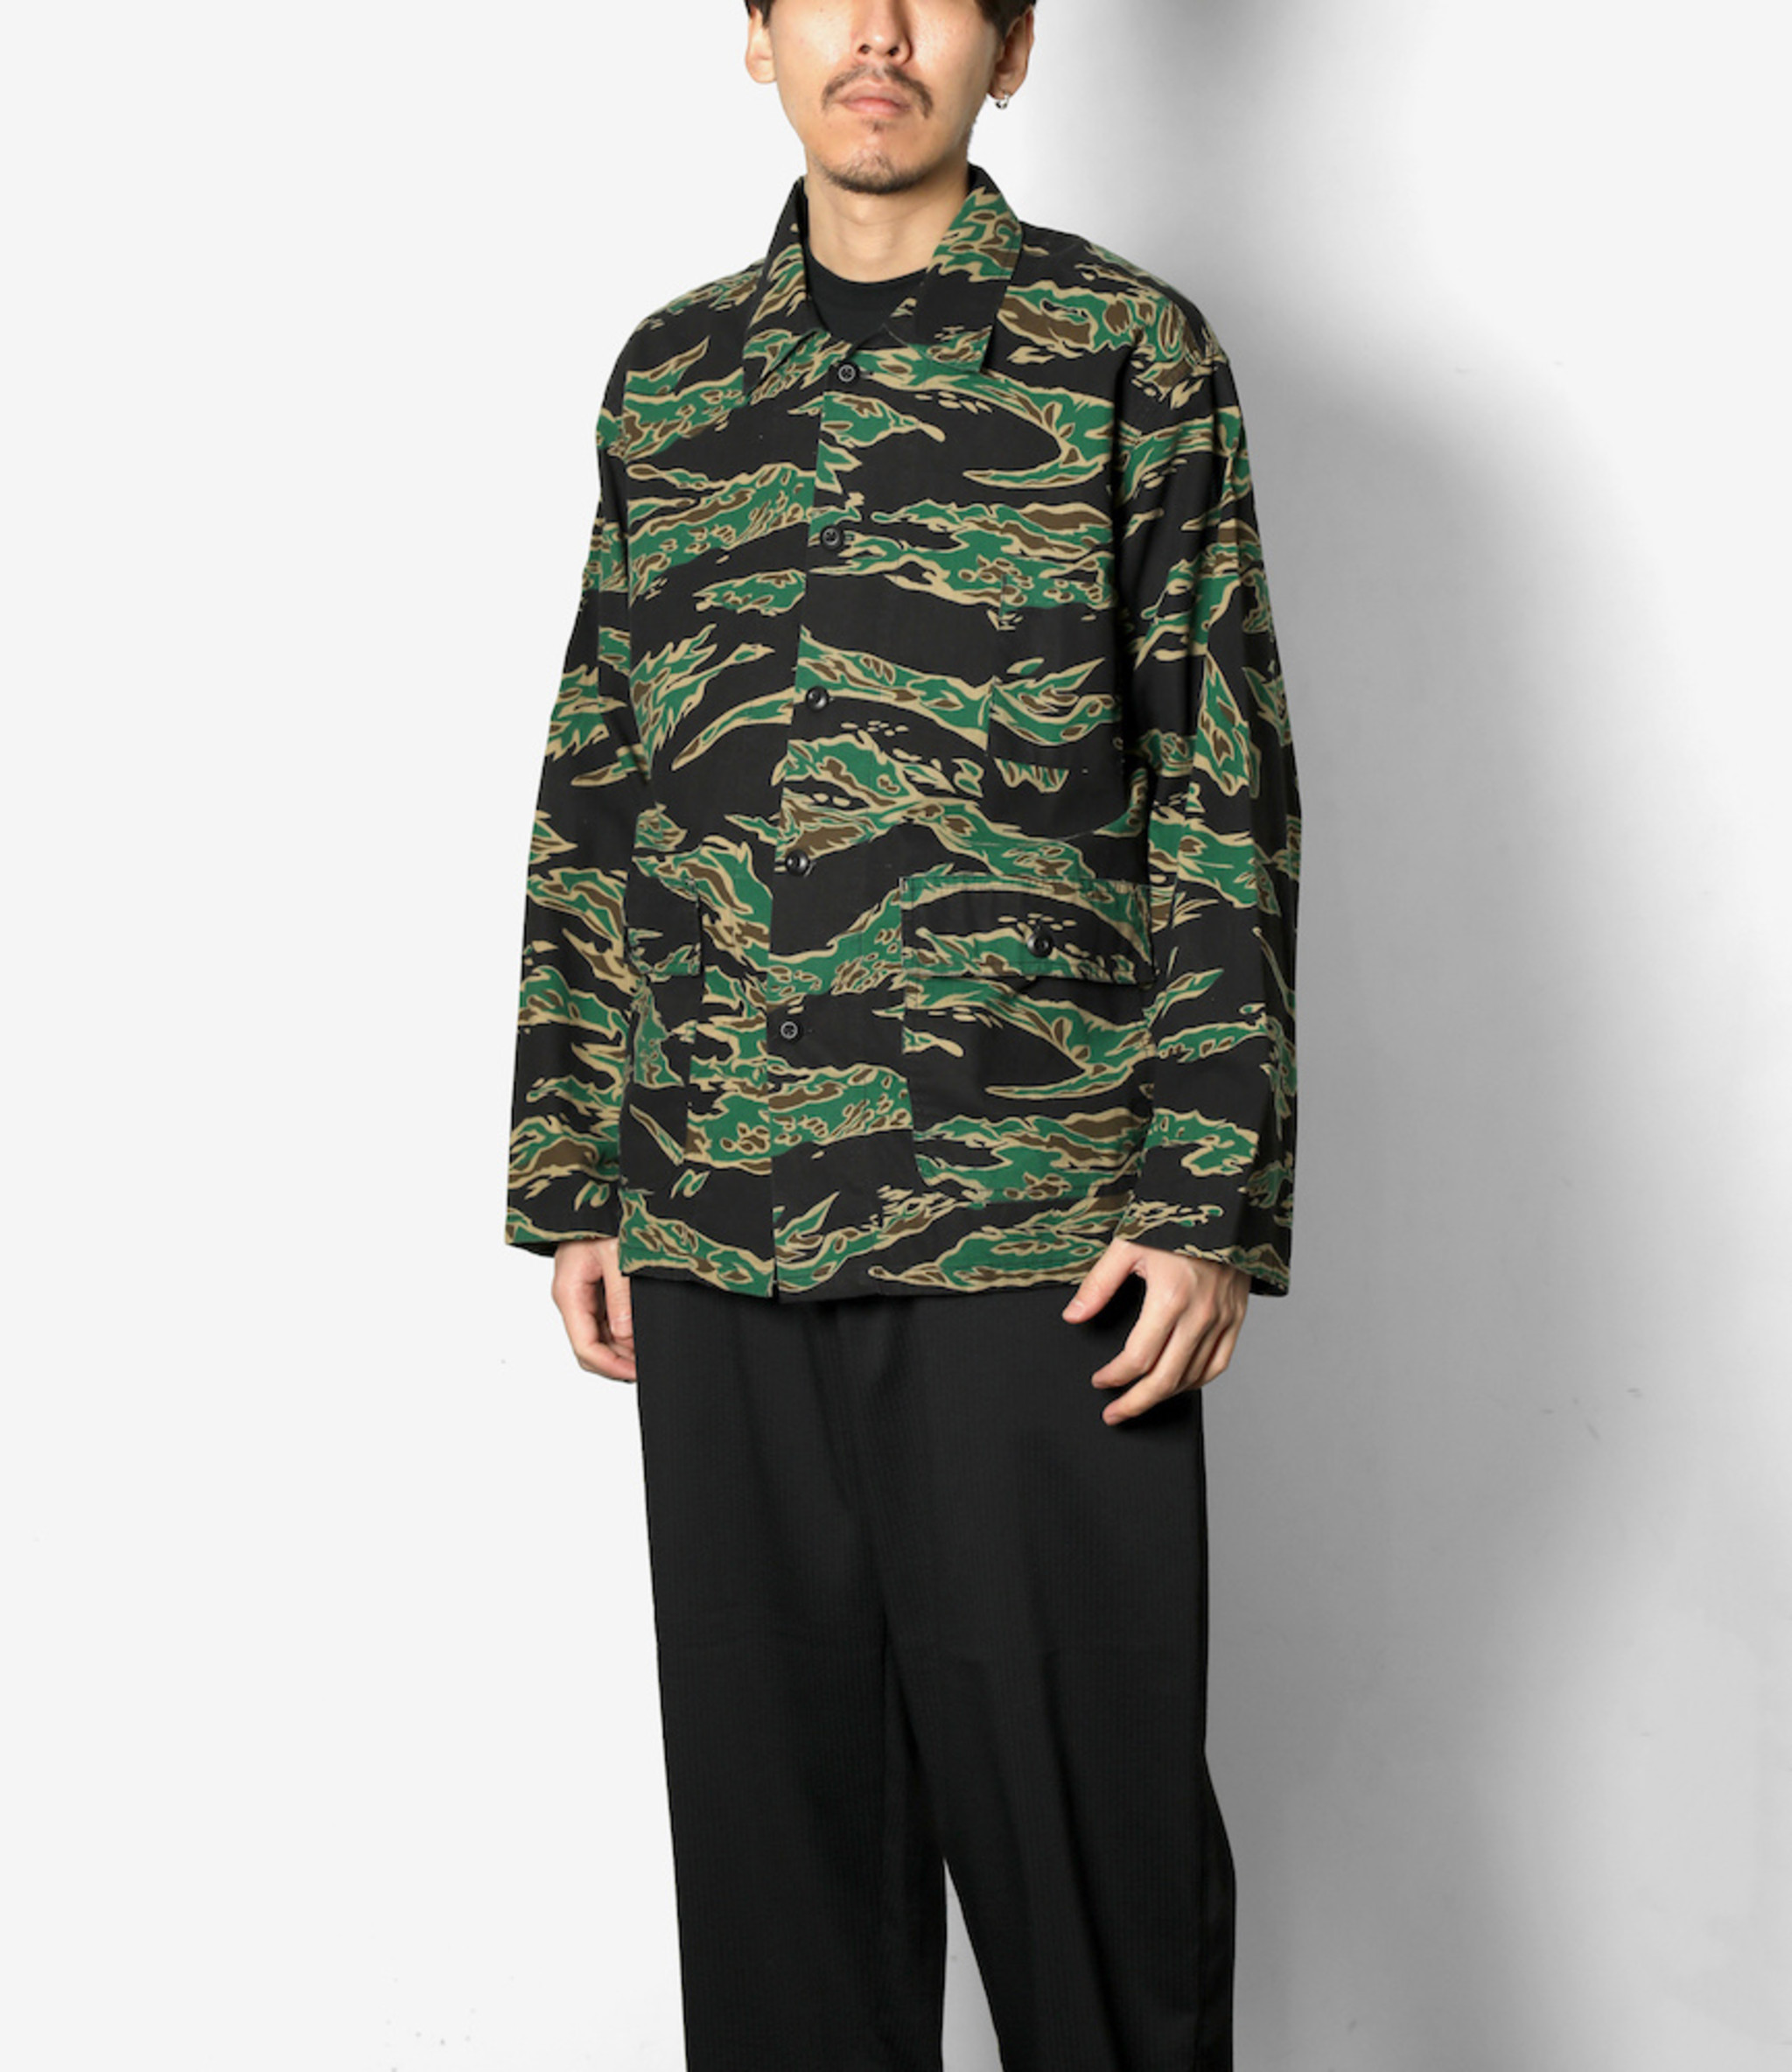 South2 West8 Hunting Shirt - Printed Flannel / Camouflage  - Tiger Camo